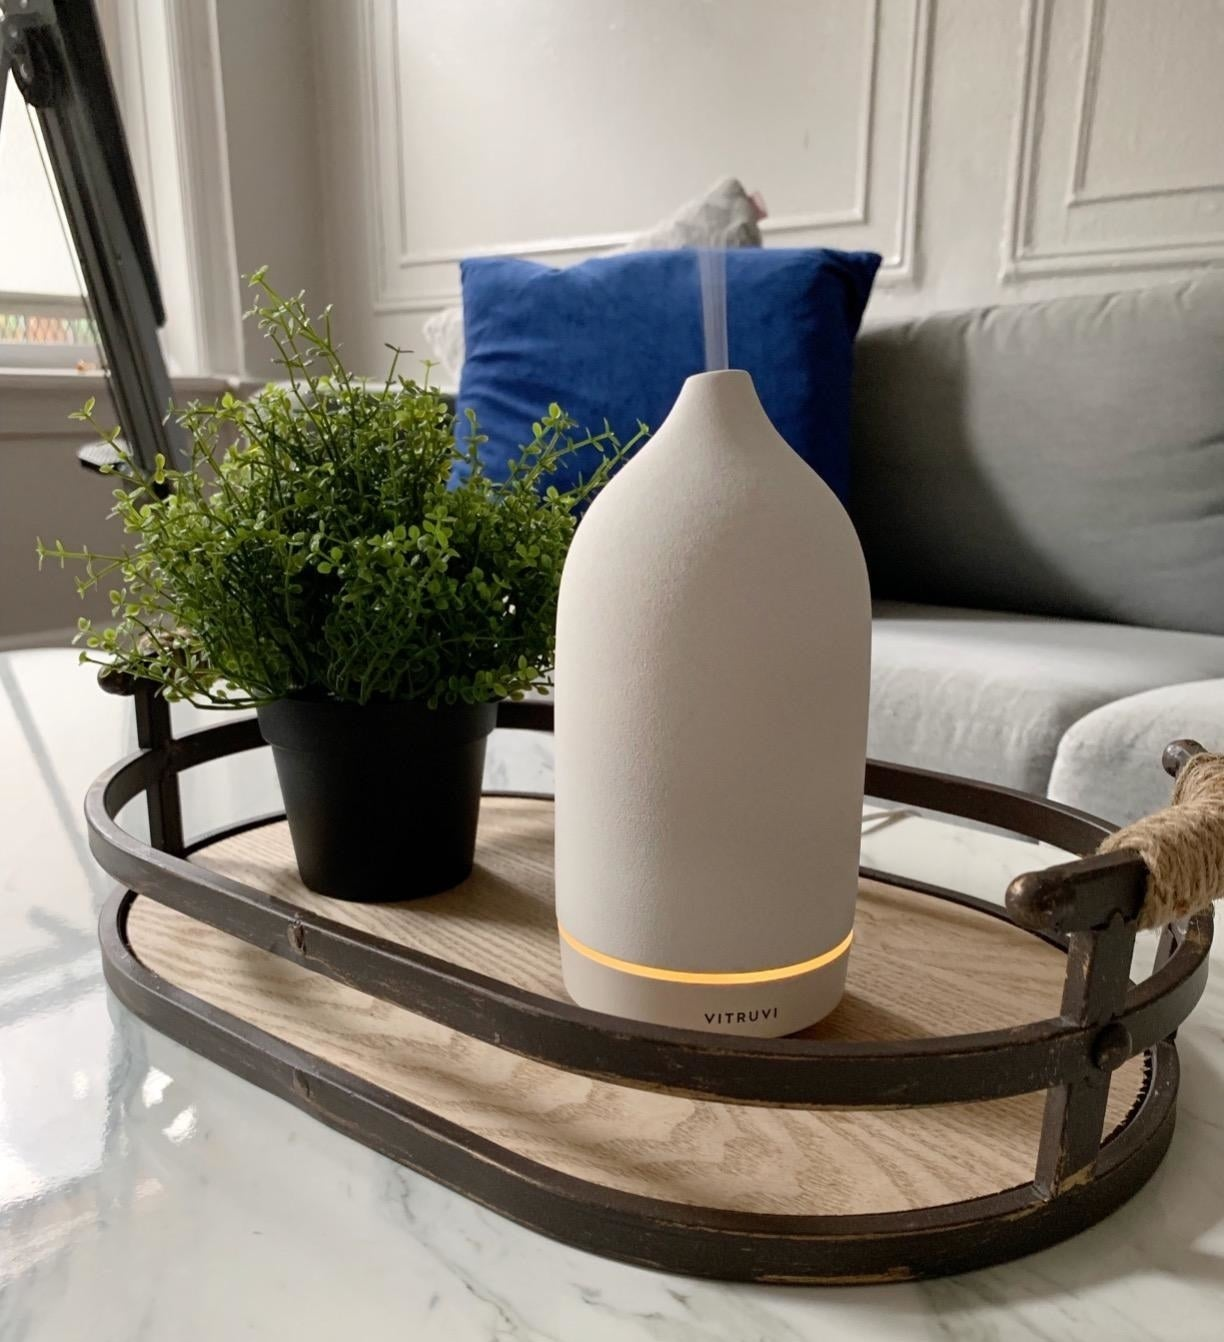 Reviewer image of cream-colored diffuser